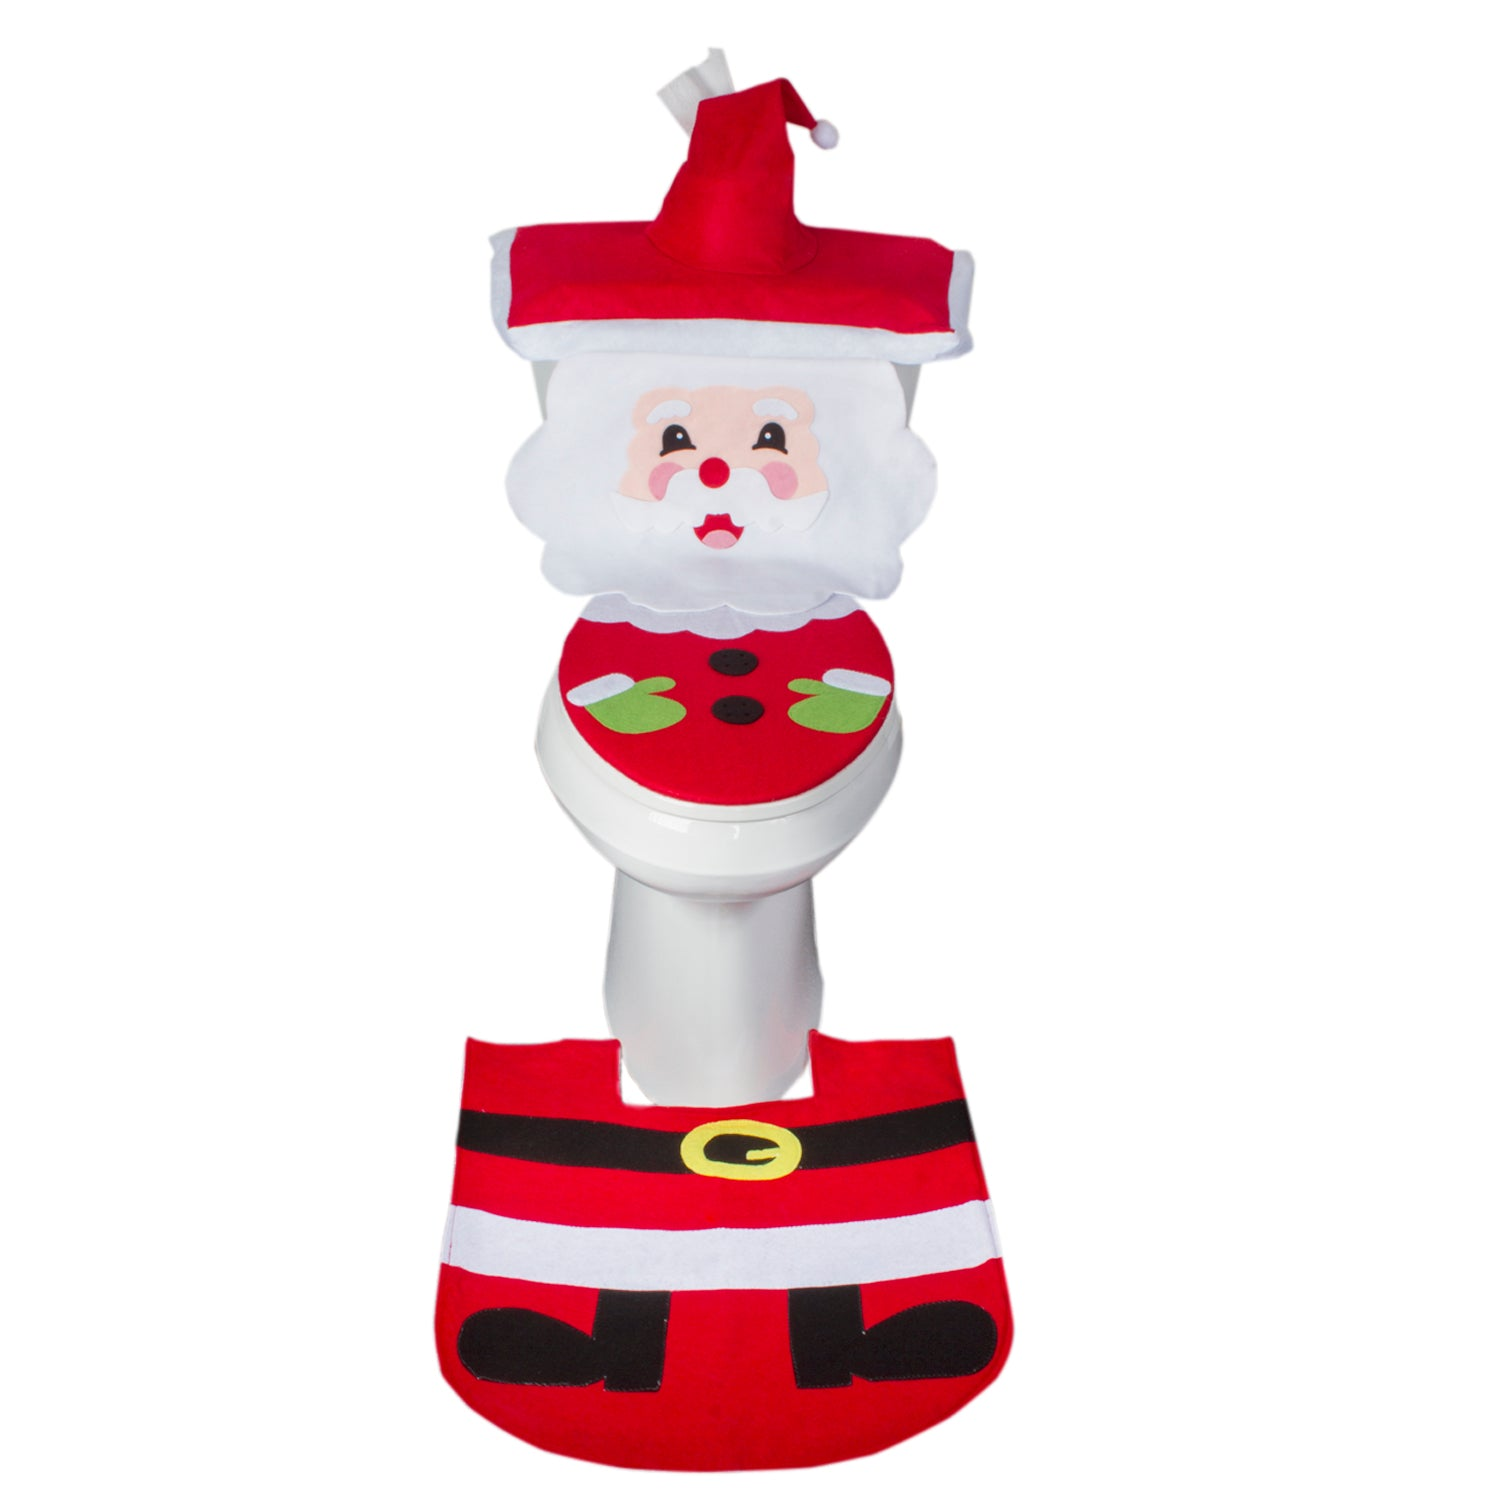 Christmas Bathroom Set - Santa Face w/ Seat & Belt - (MW3549)